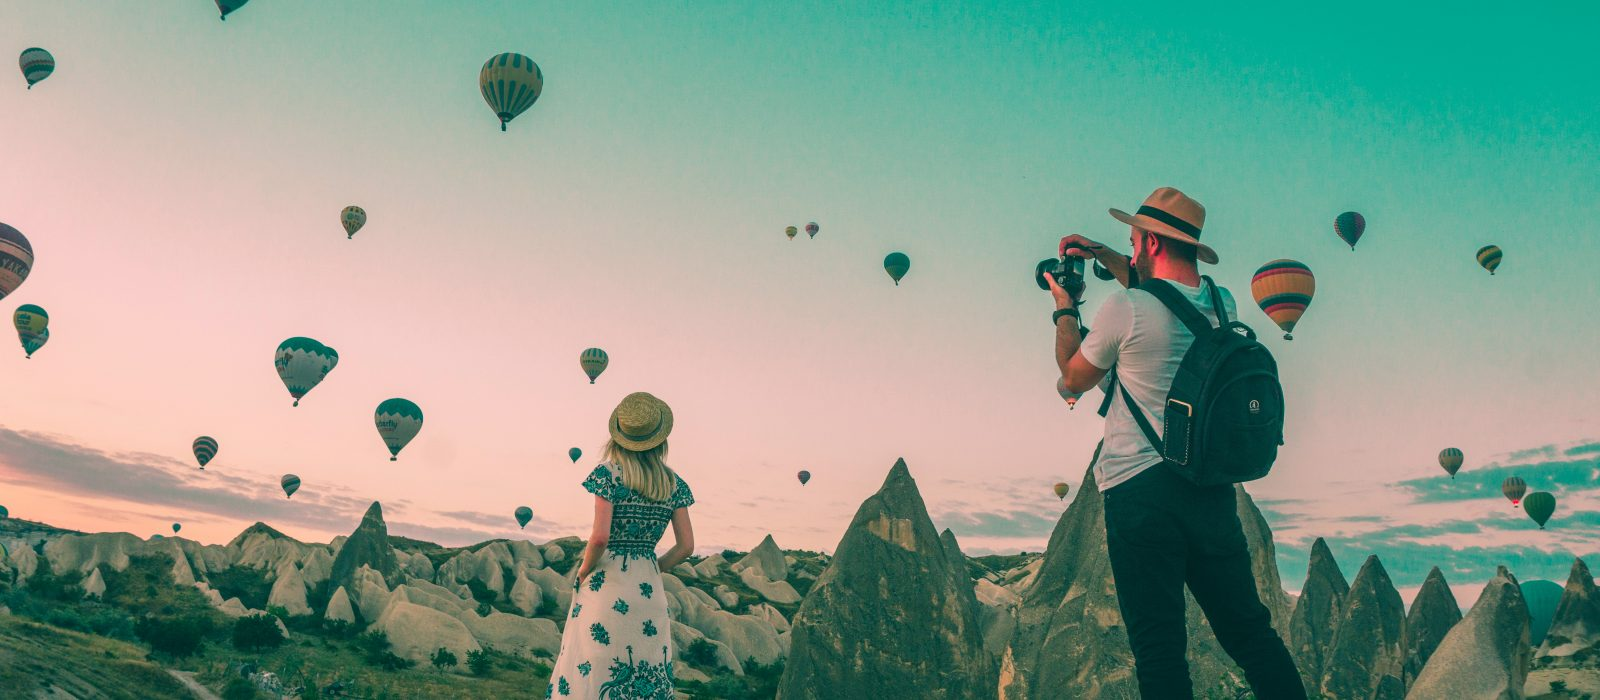 Top Expat Travel Bloggers To Follow in 2021